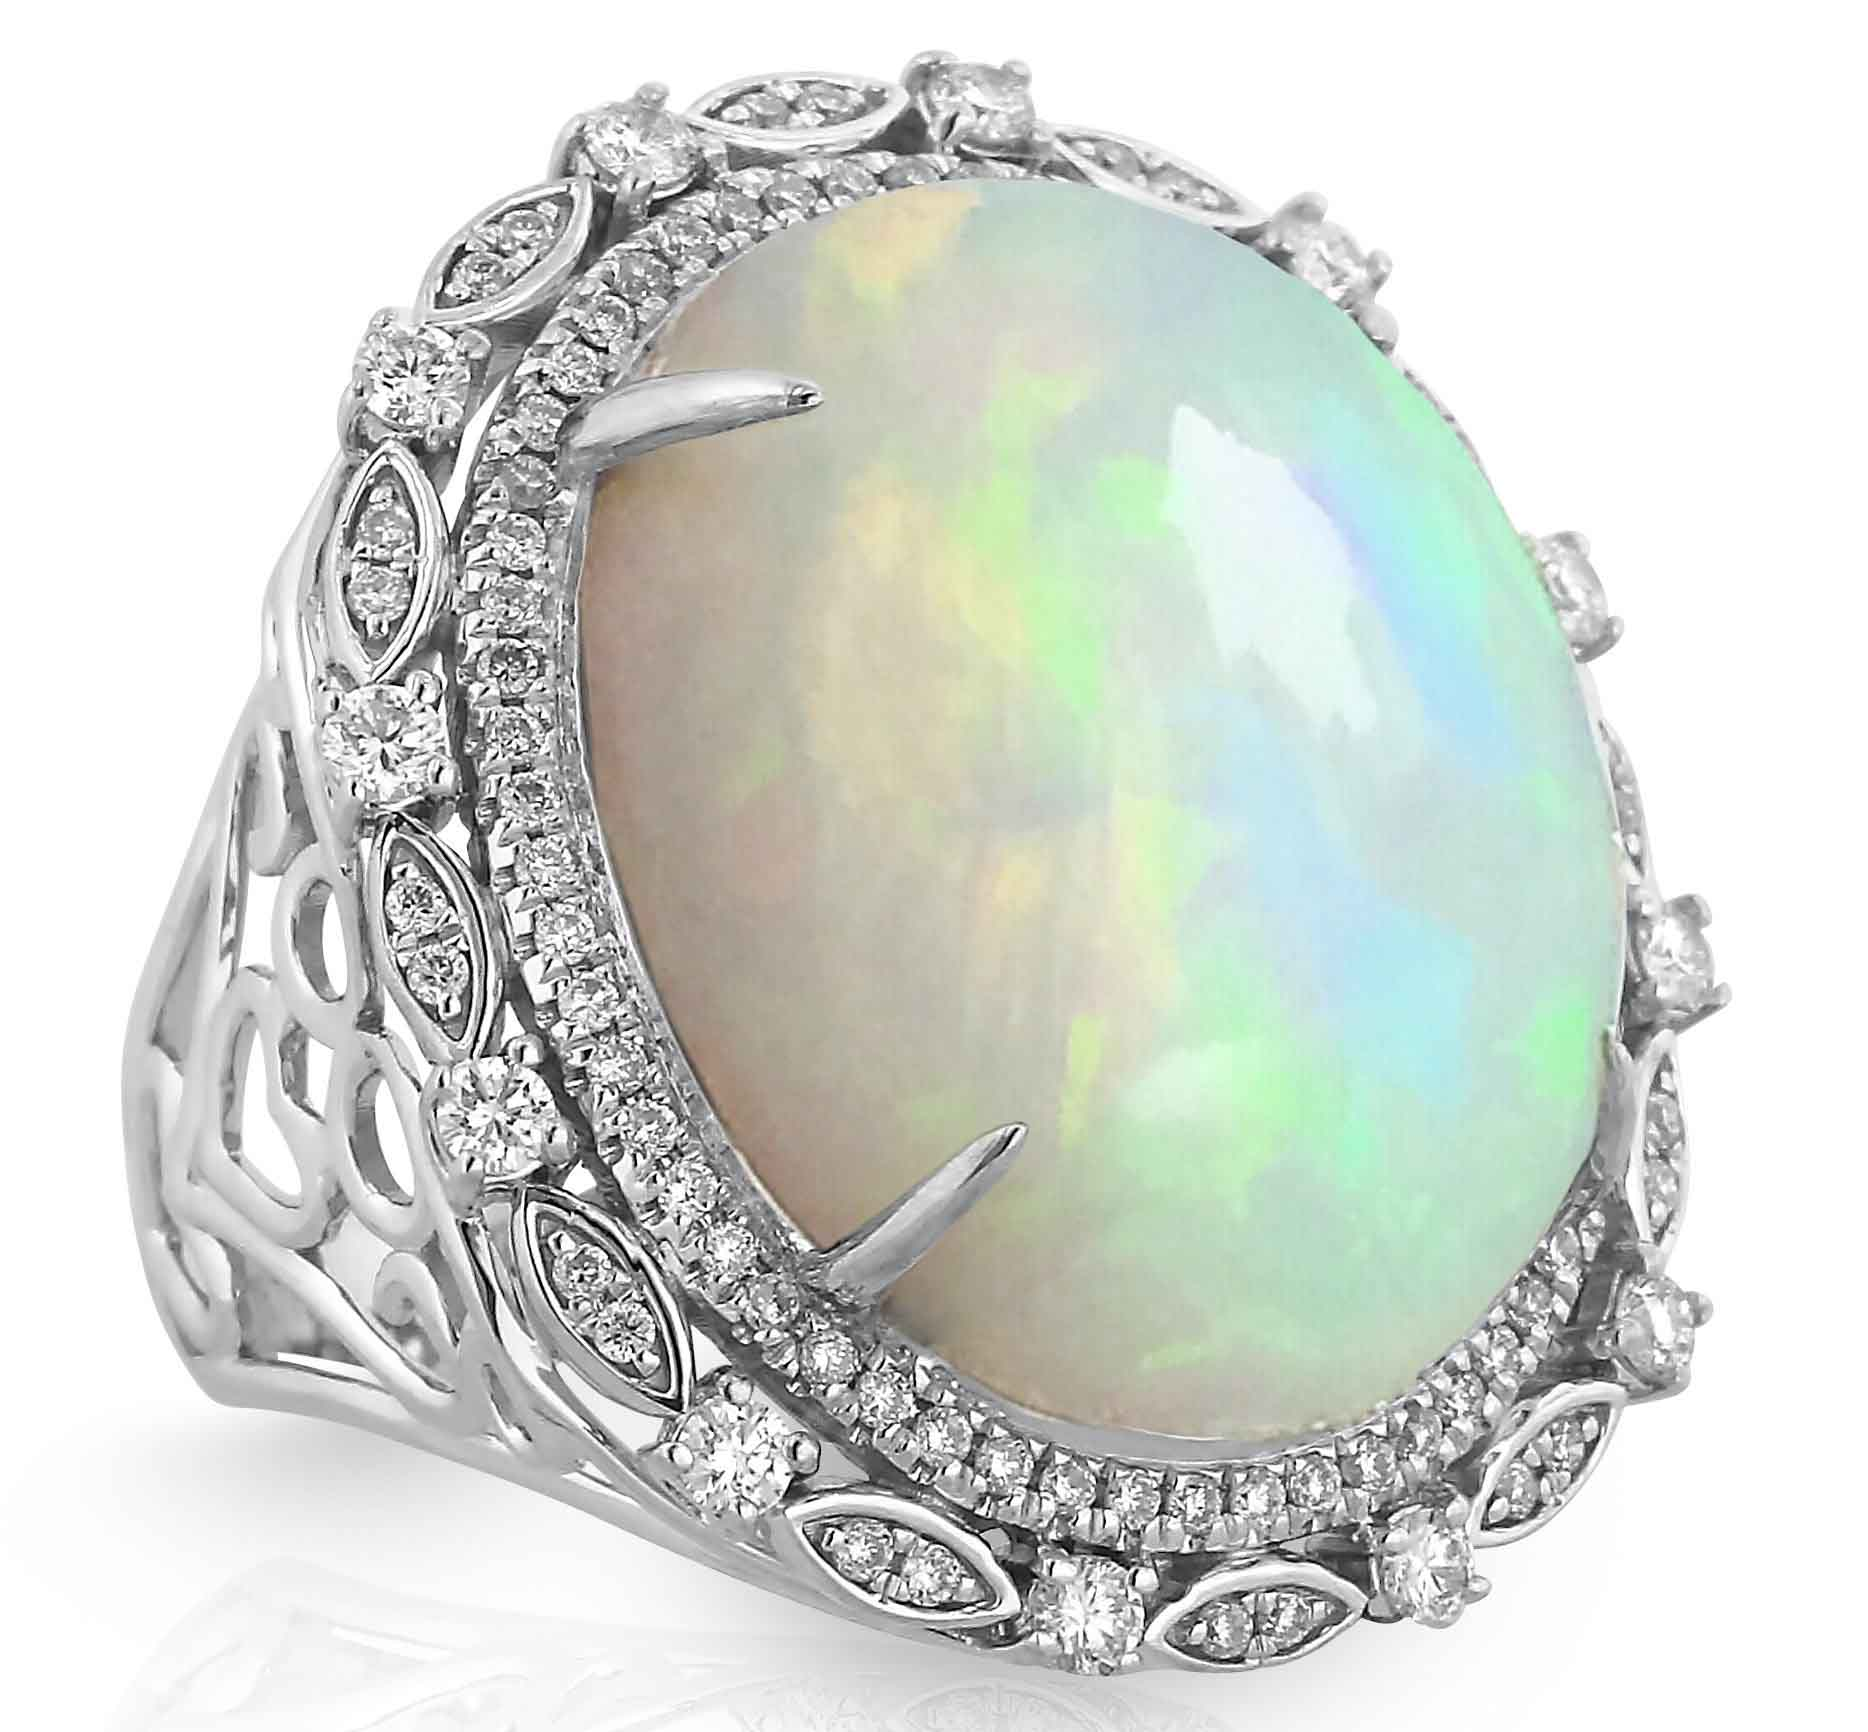 Cocktail White Gold Ring with Opal